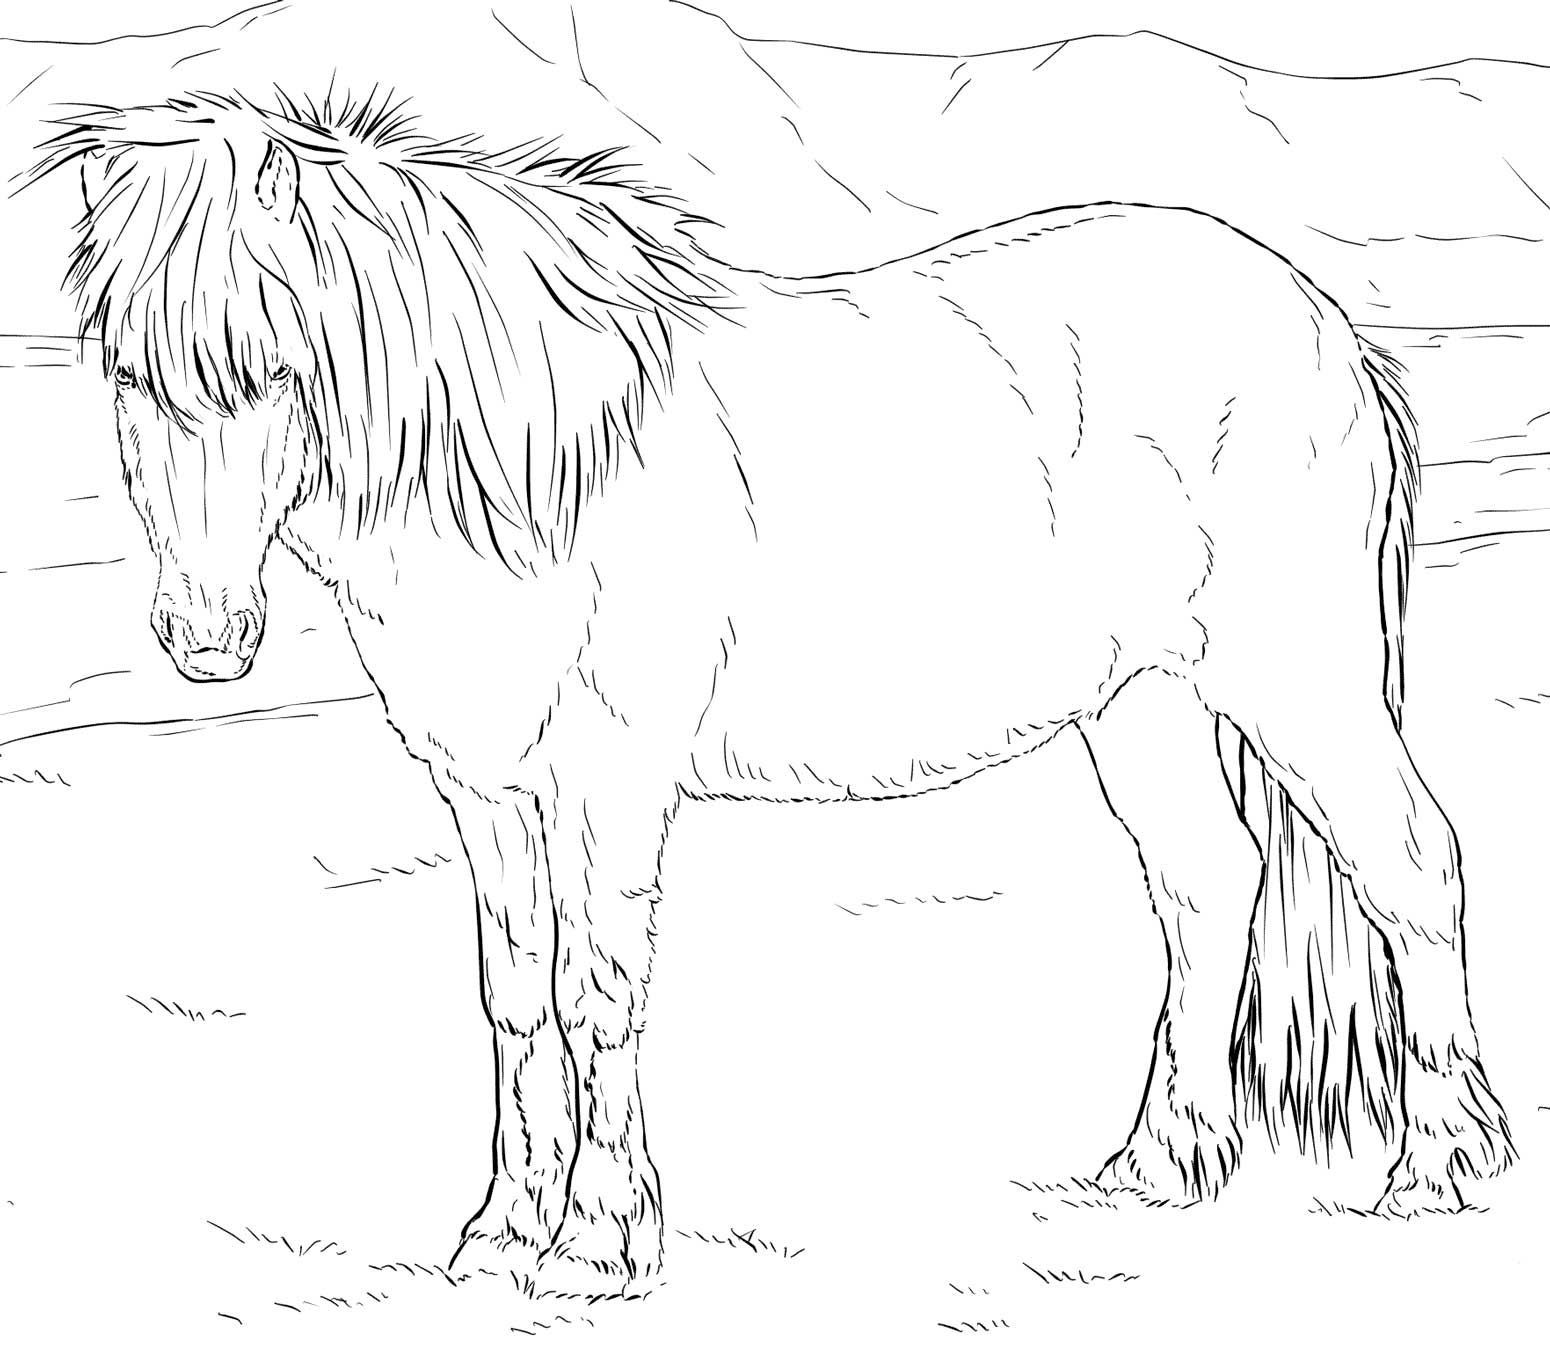 Icelandic Horse Coloring Page Horse Coloring Pages Horse Coloring Horse Coloring Books [ 1351 x 1550 Pixel ]